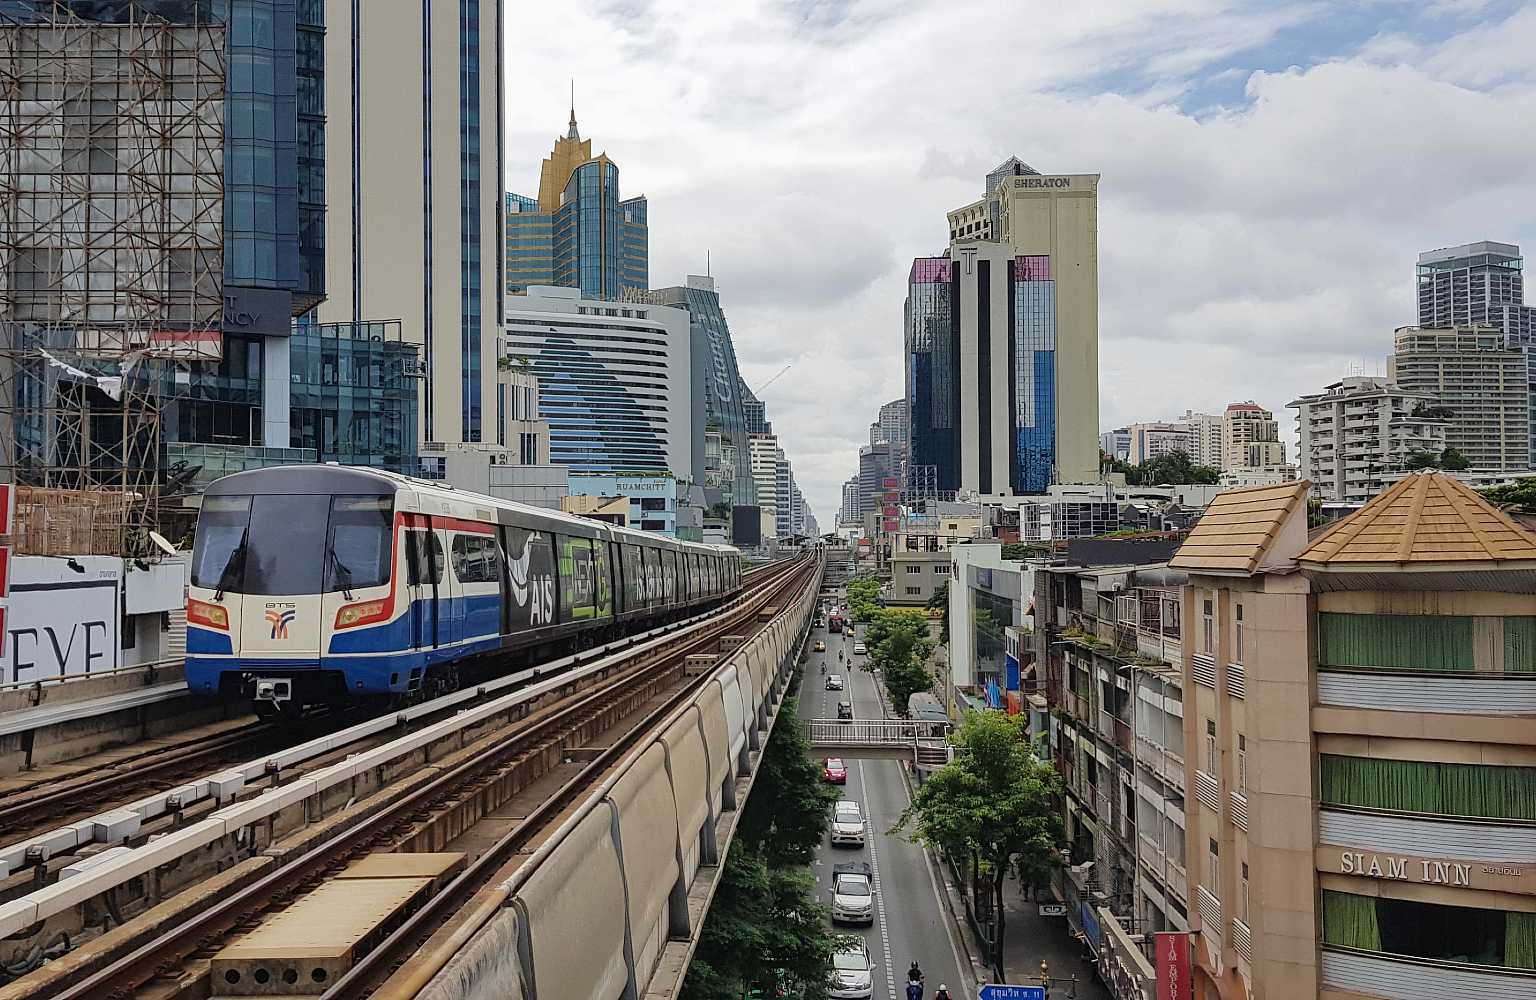 Sky train above the roads between the tall buildings in the centre of Bangkok